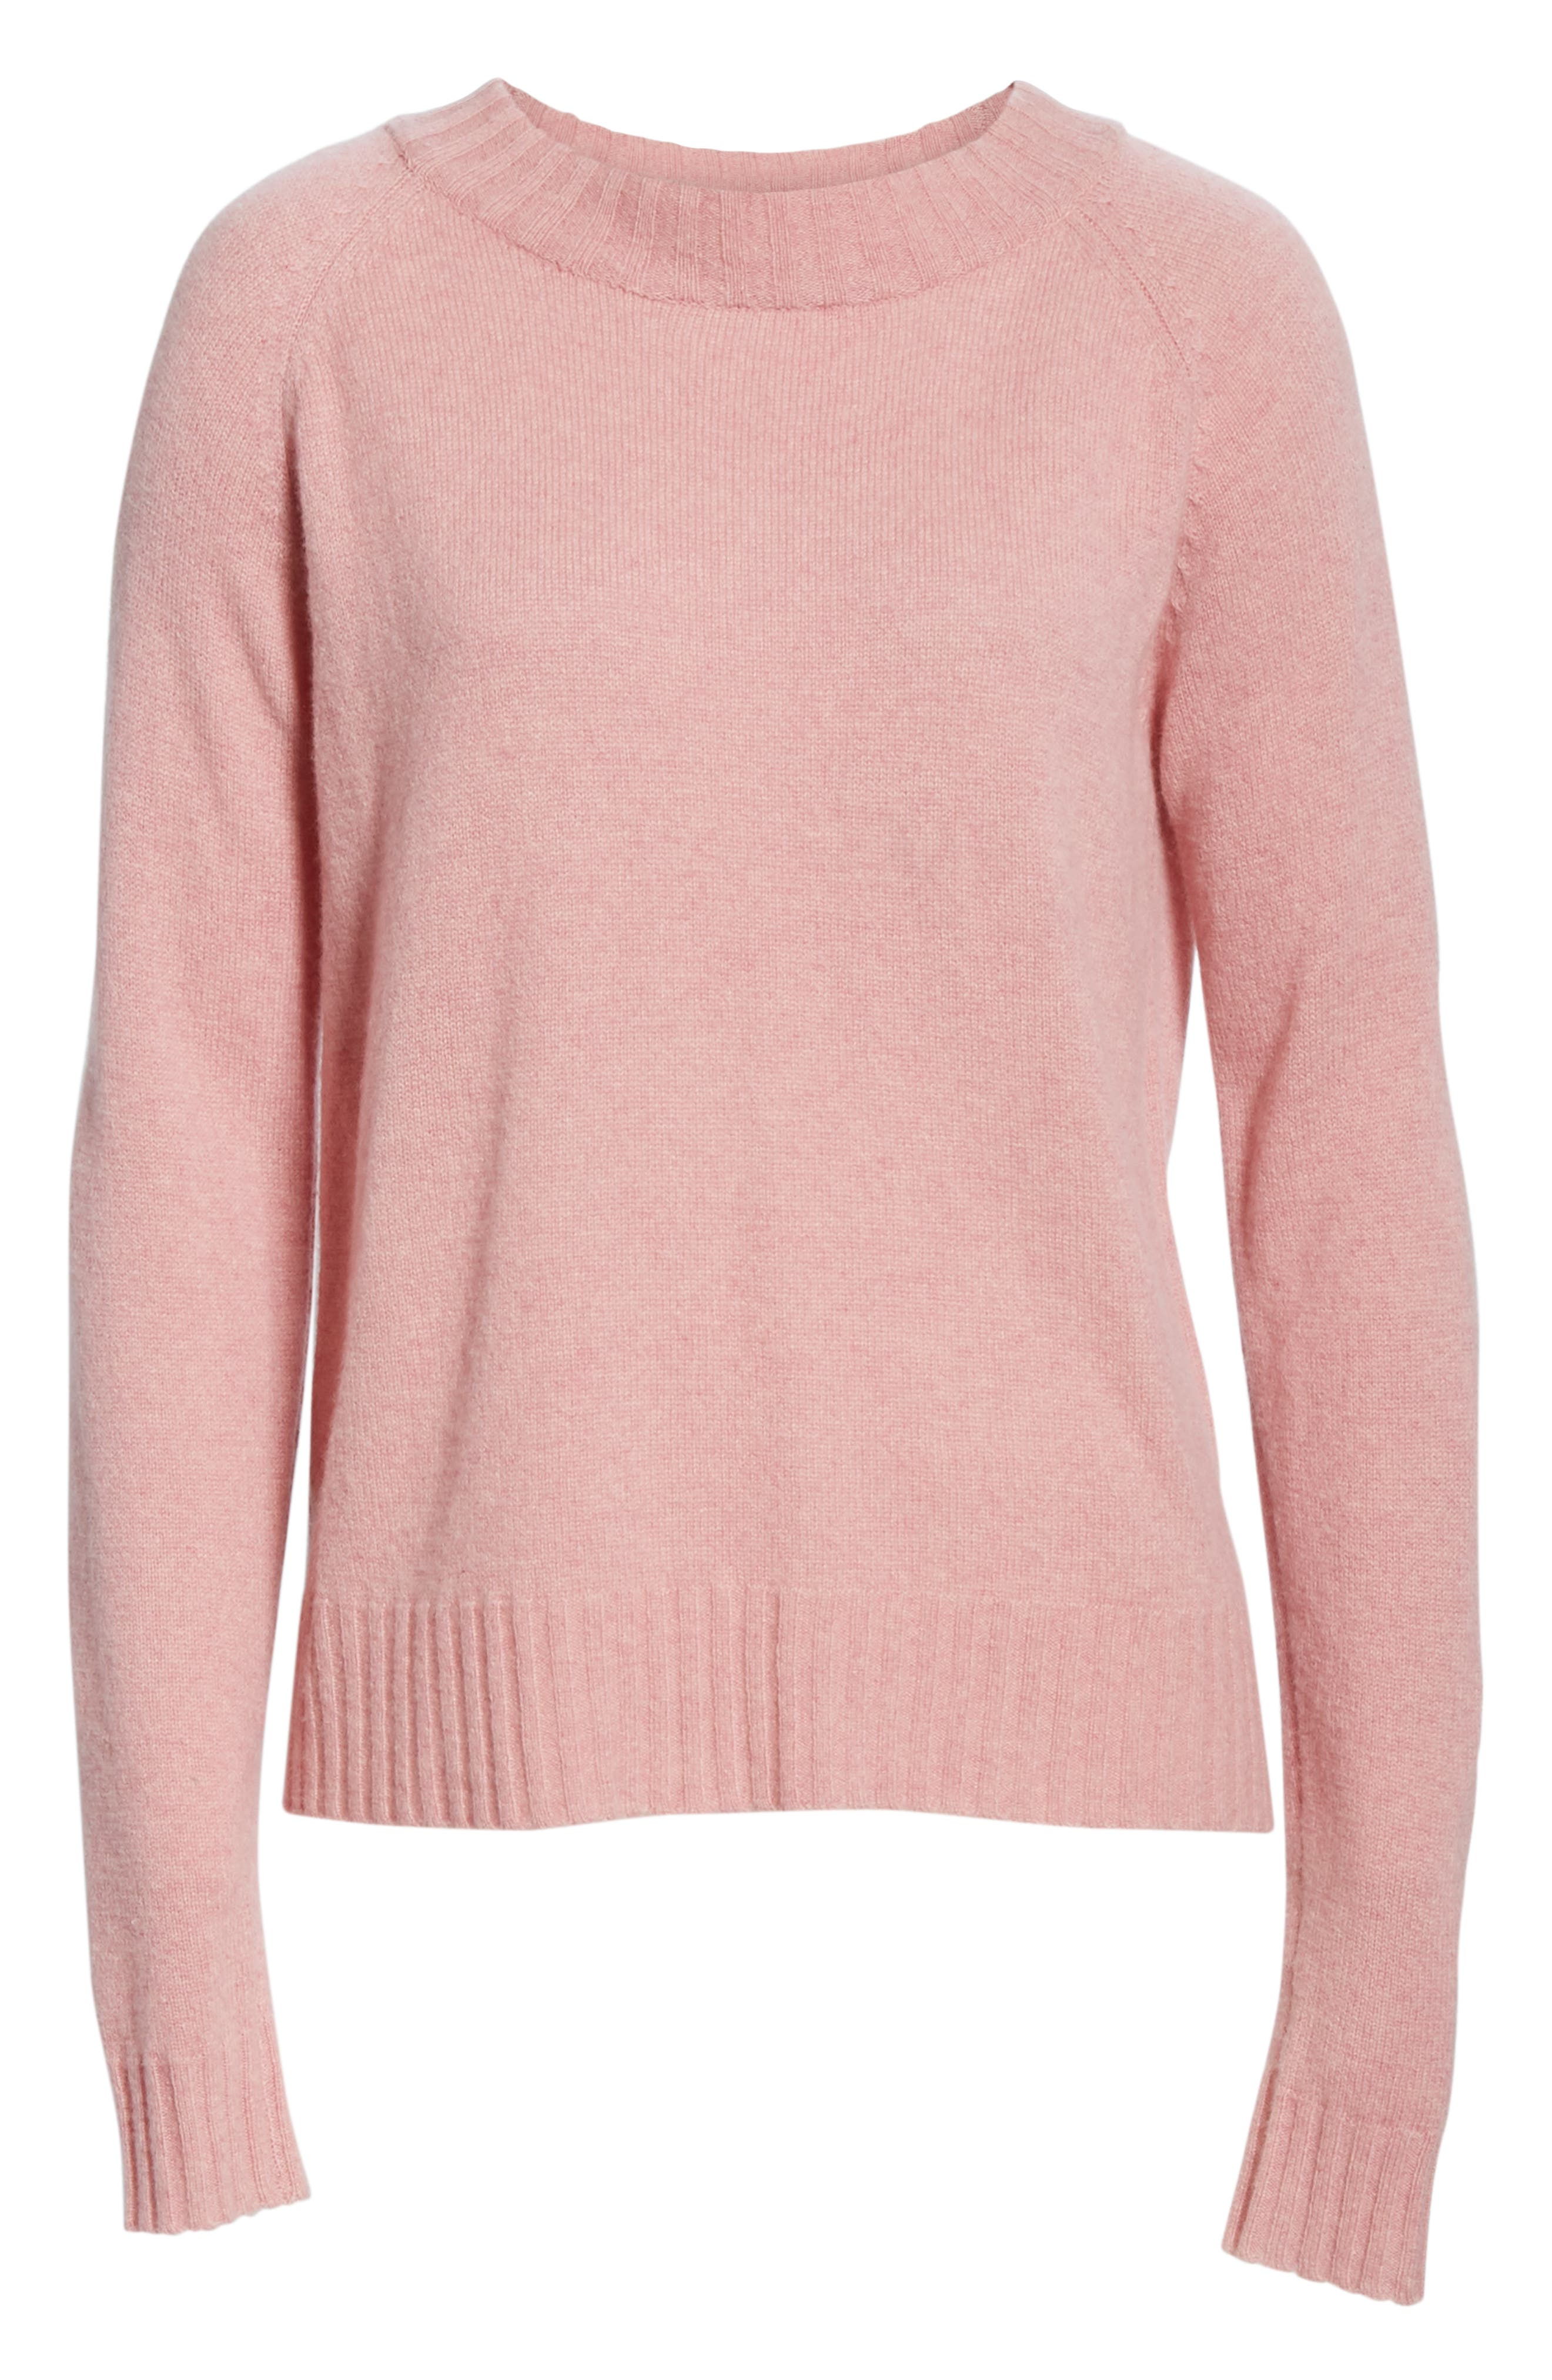 Cashmere Sweater,                             Alternate thumbnail 6, color,                             PINK